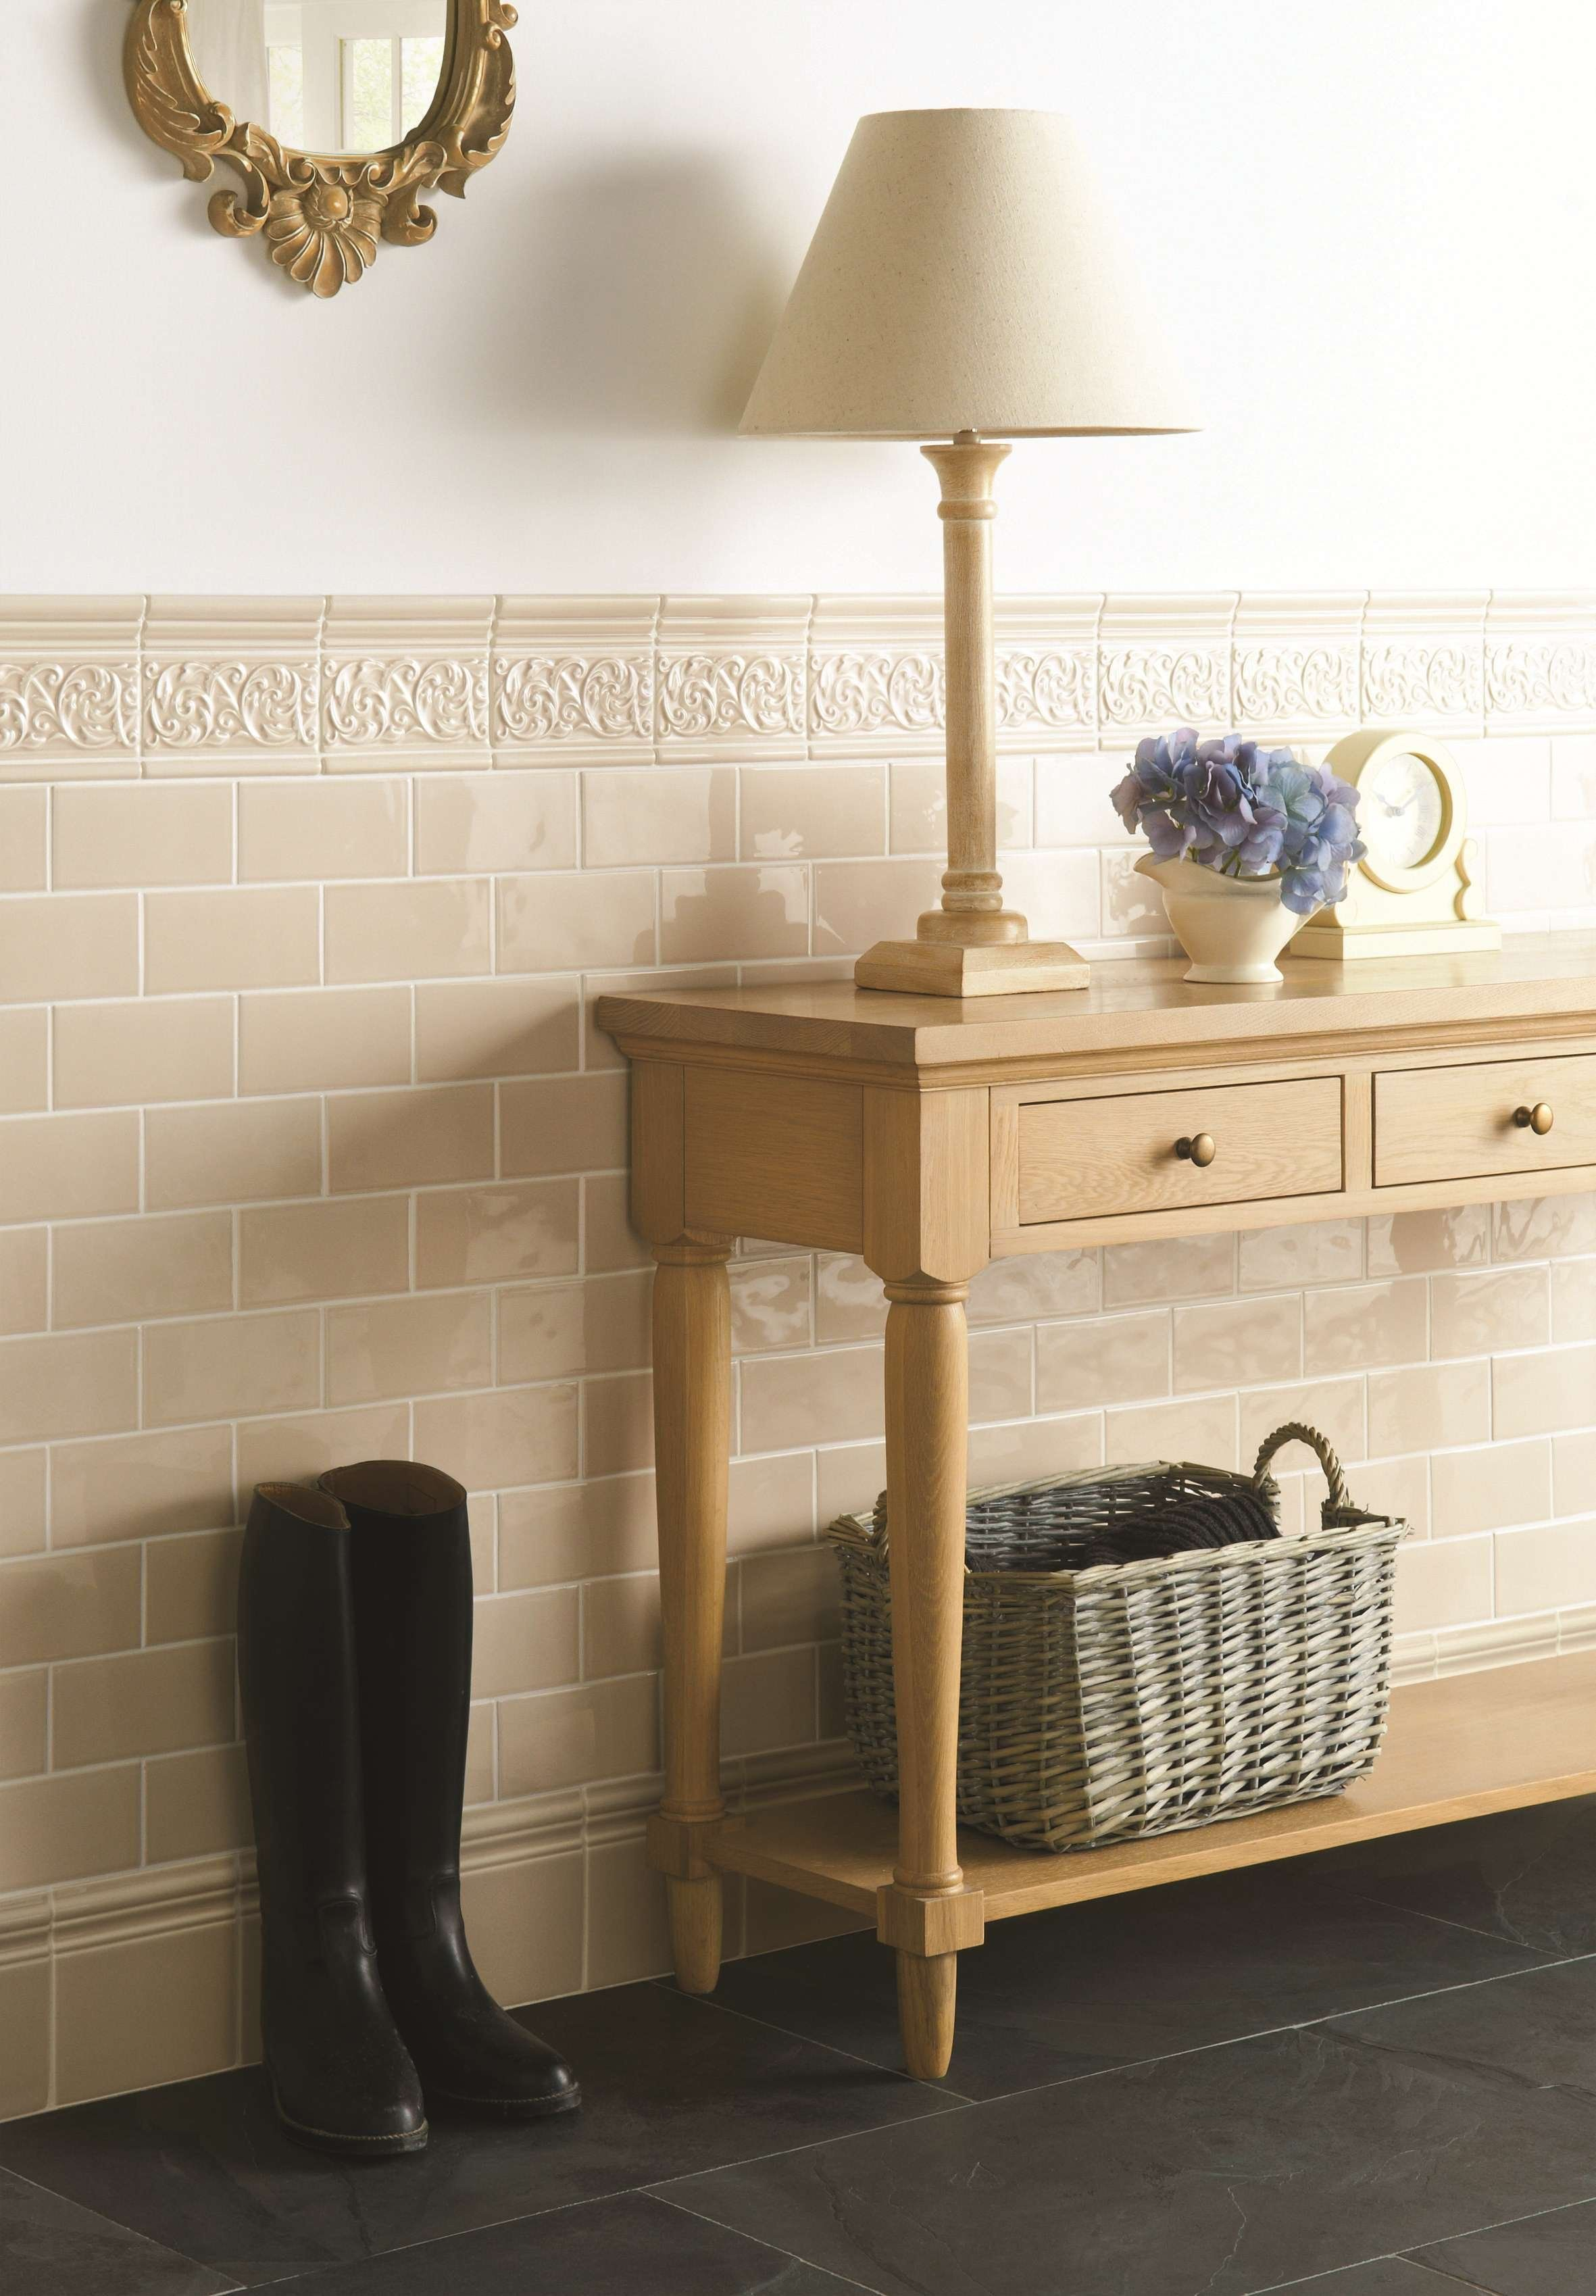 Hadleigh gloss field tiles coupled with decorative mouldings are a hadleigh gloss field tiles coupled with decorative mouldings are a perfect and practical choice dailygadgetfo Choice Image